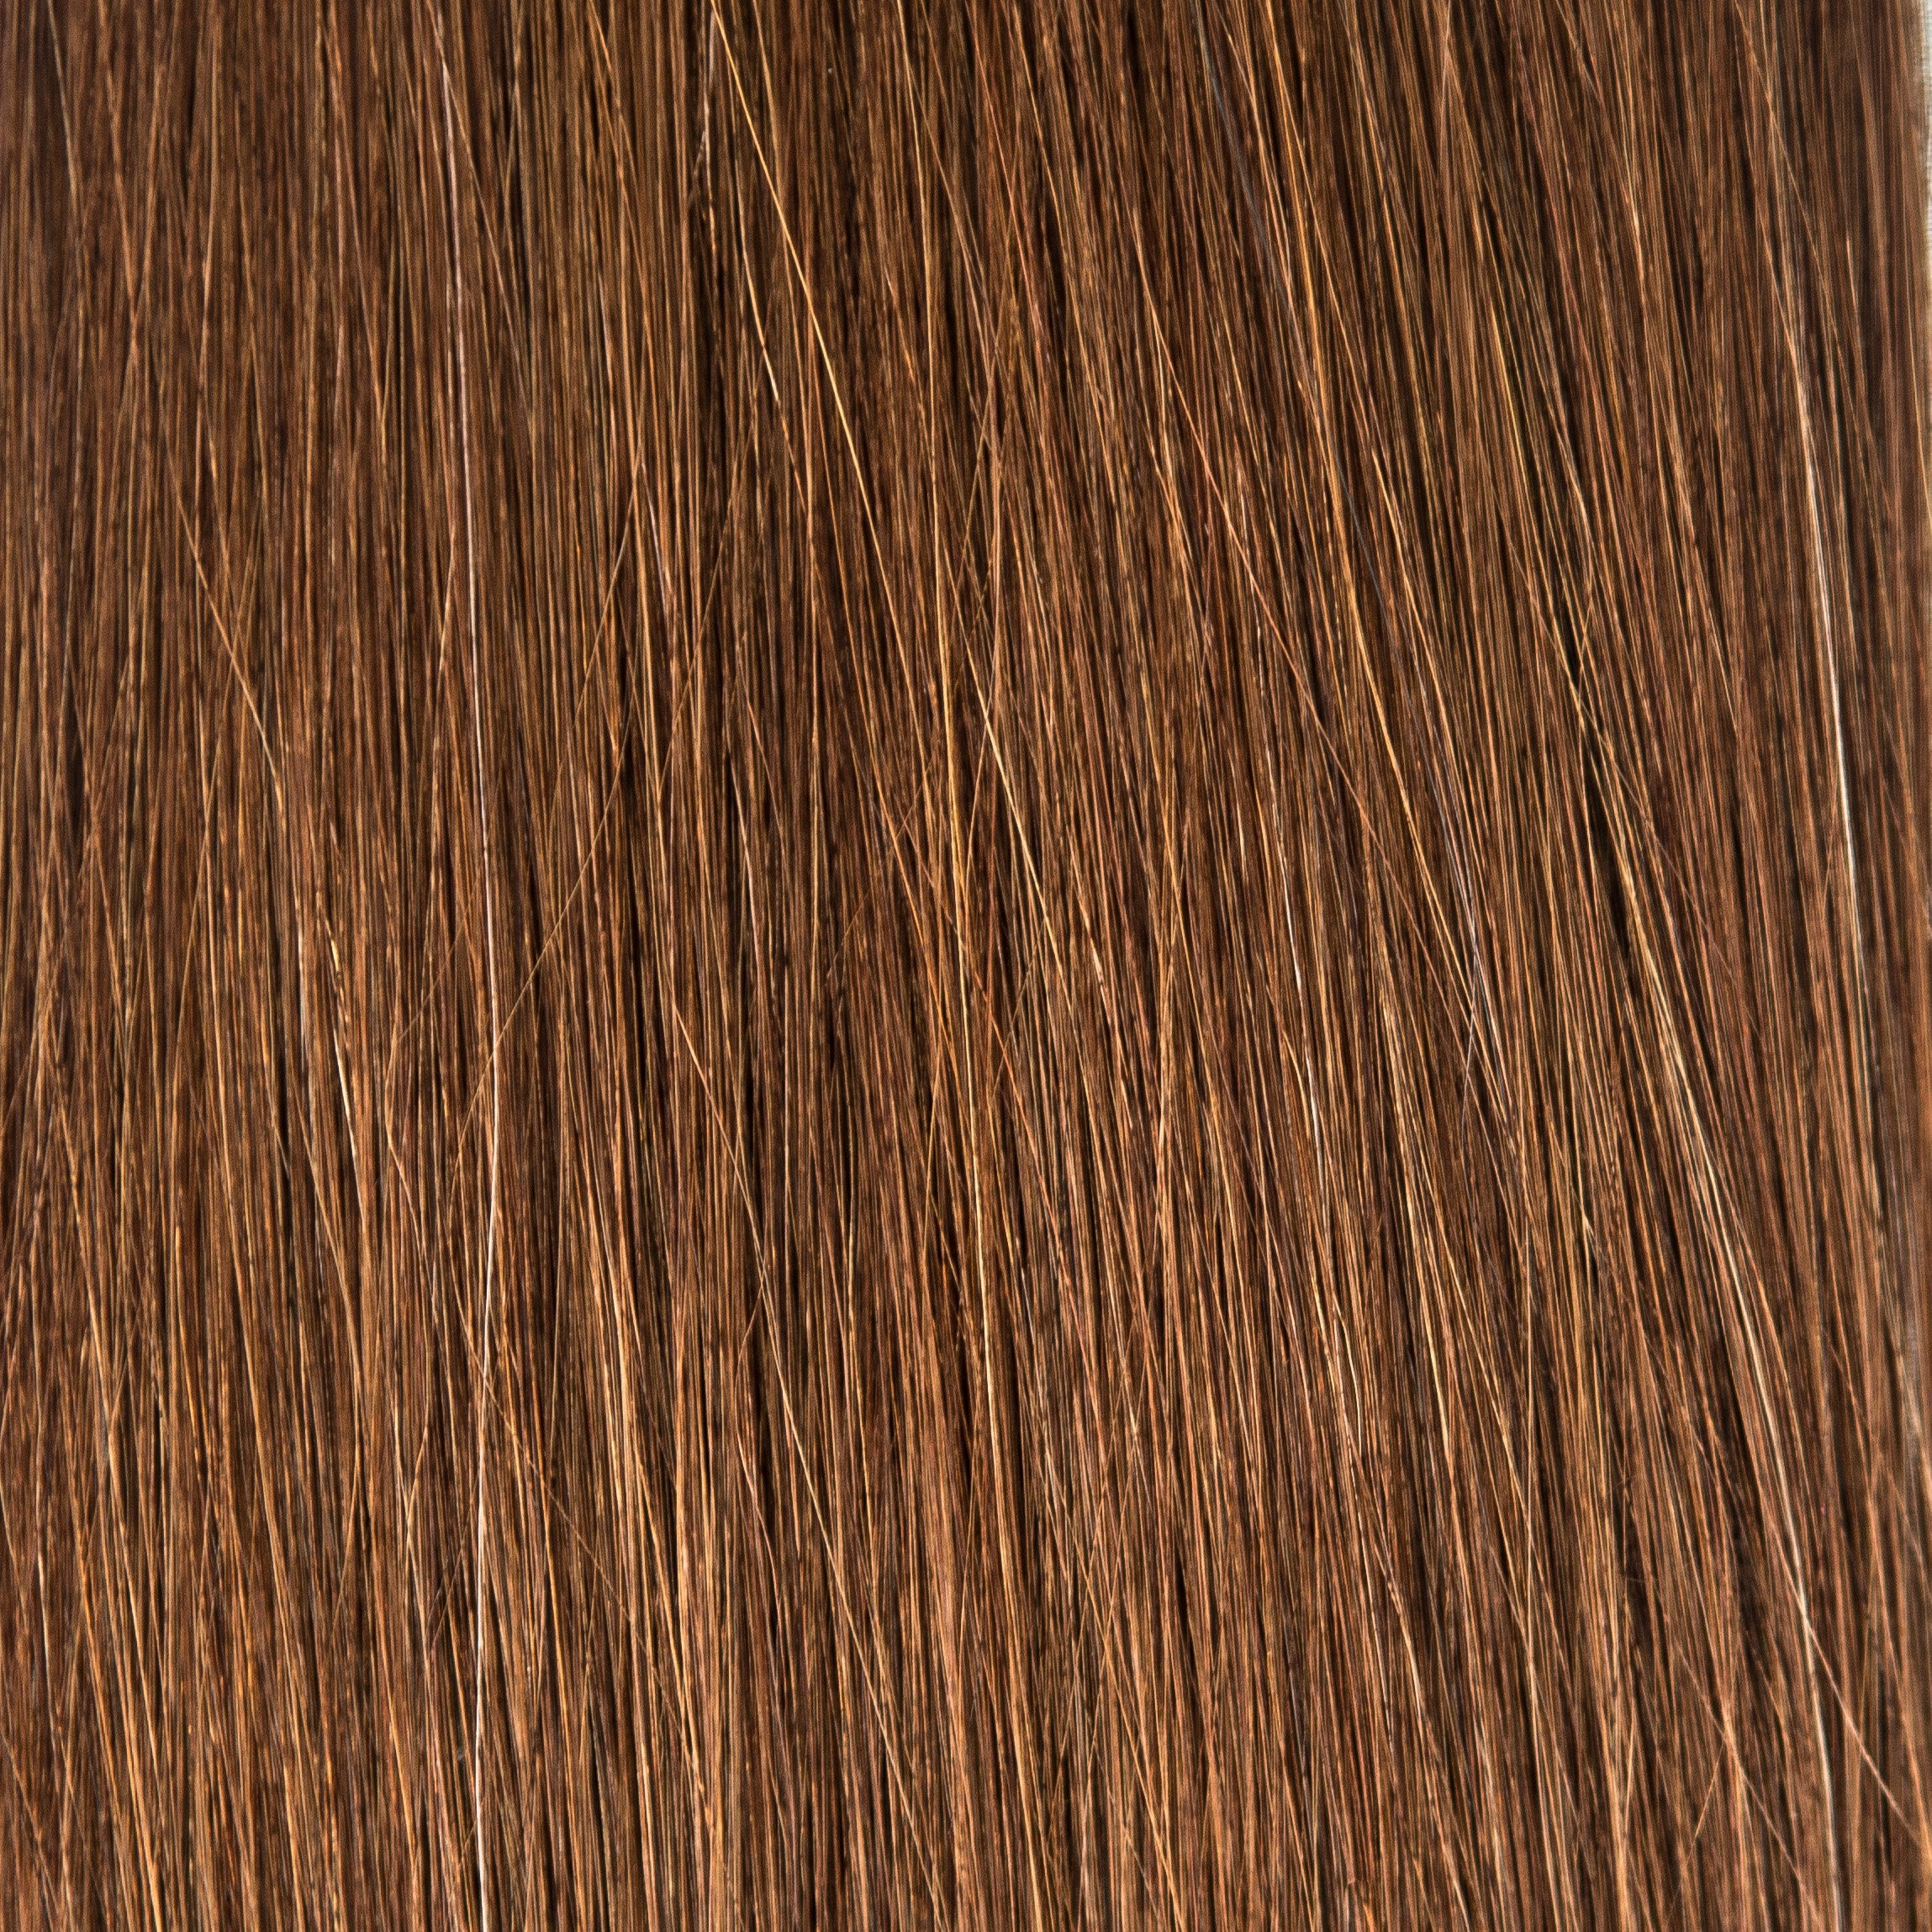 Laced Hair I-Tip Extensions #33 (Copper Penny)